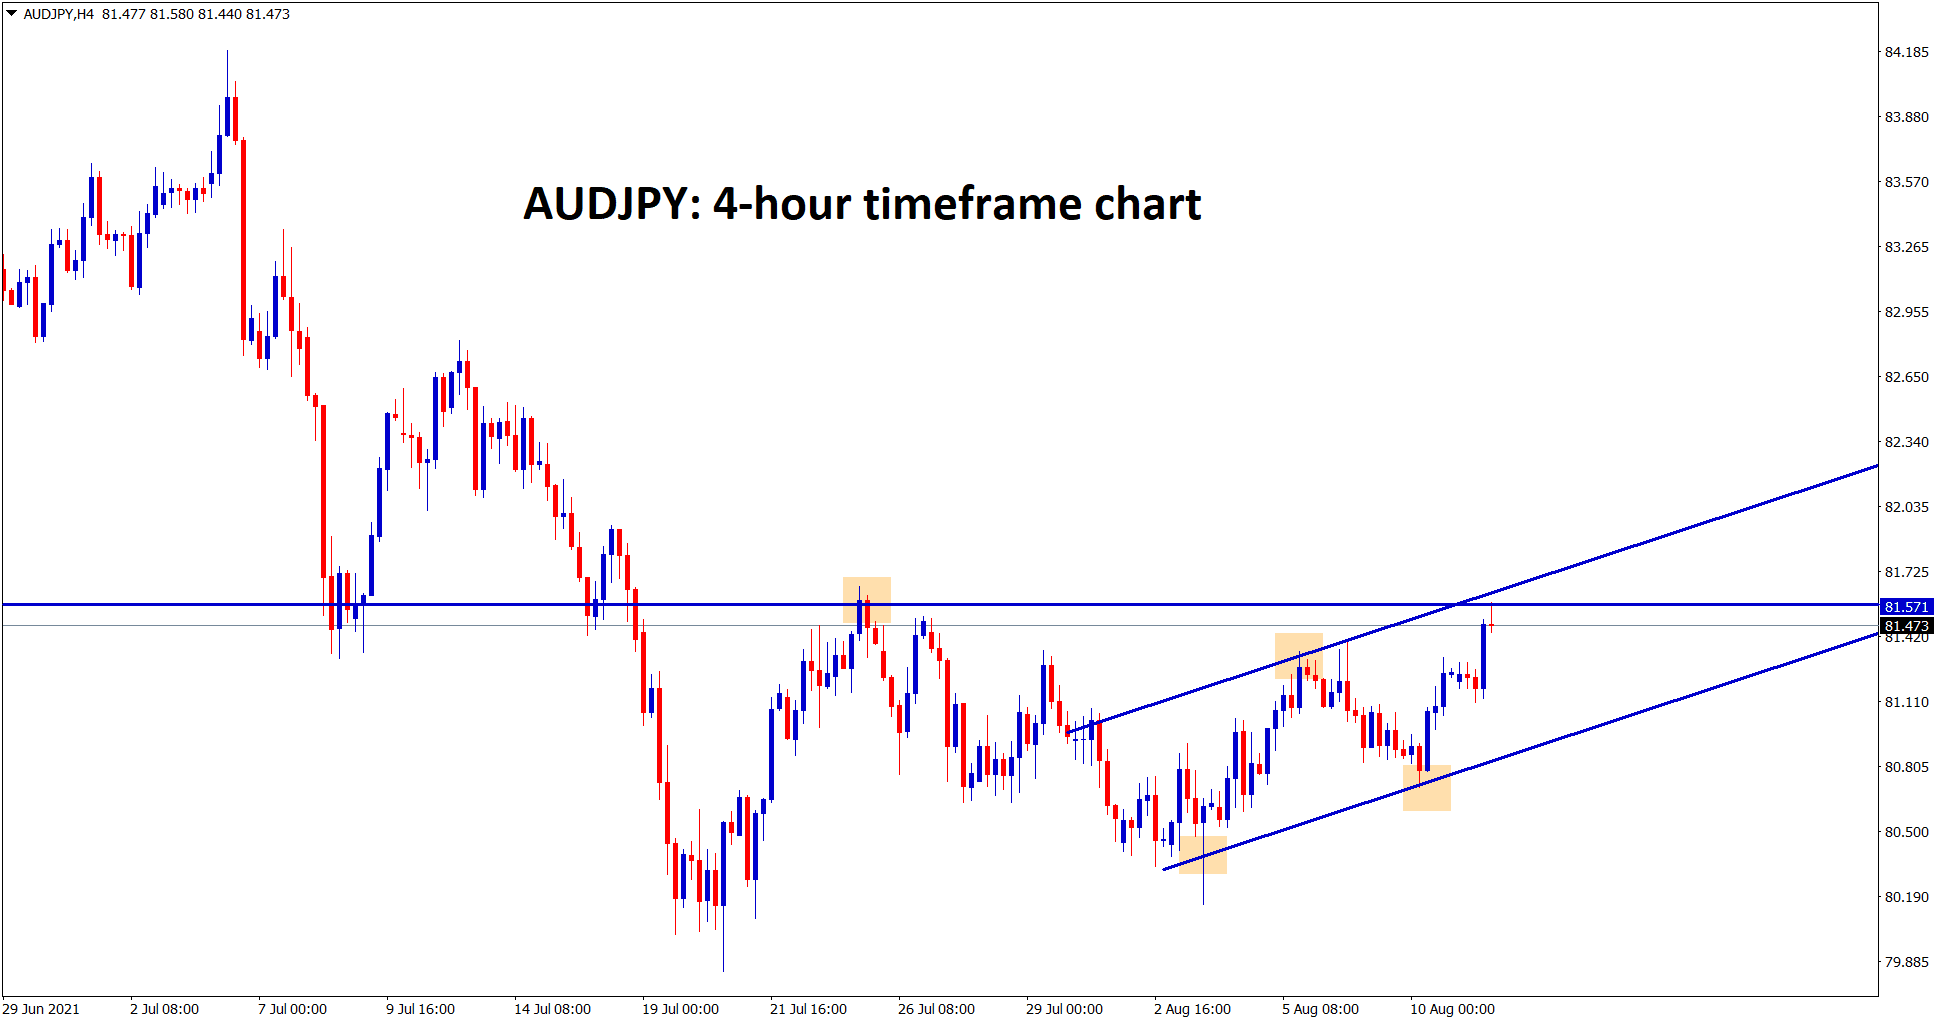 AUDJPY is standing at the higher high of the channel line and the resistance area